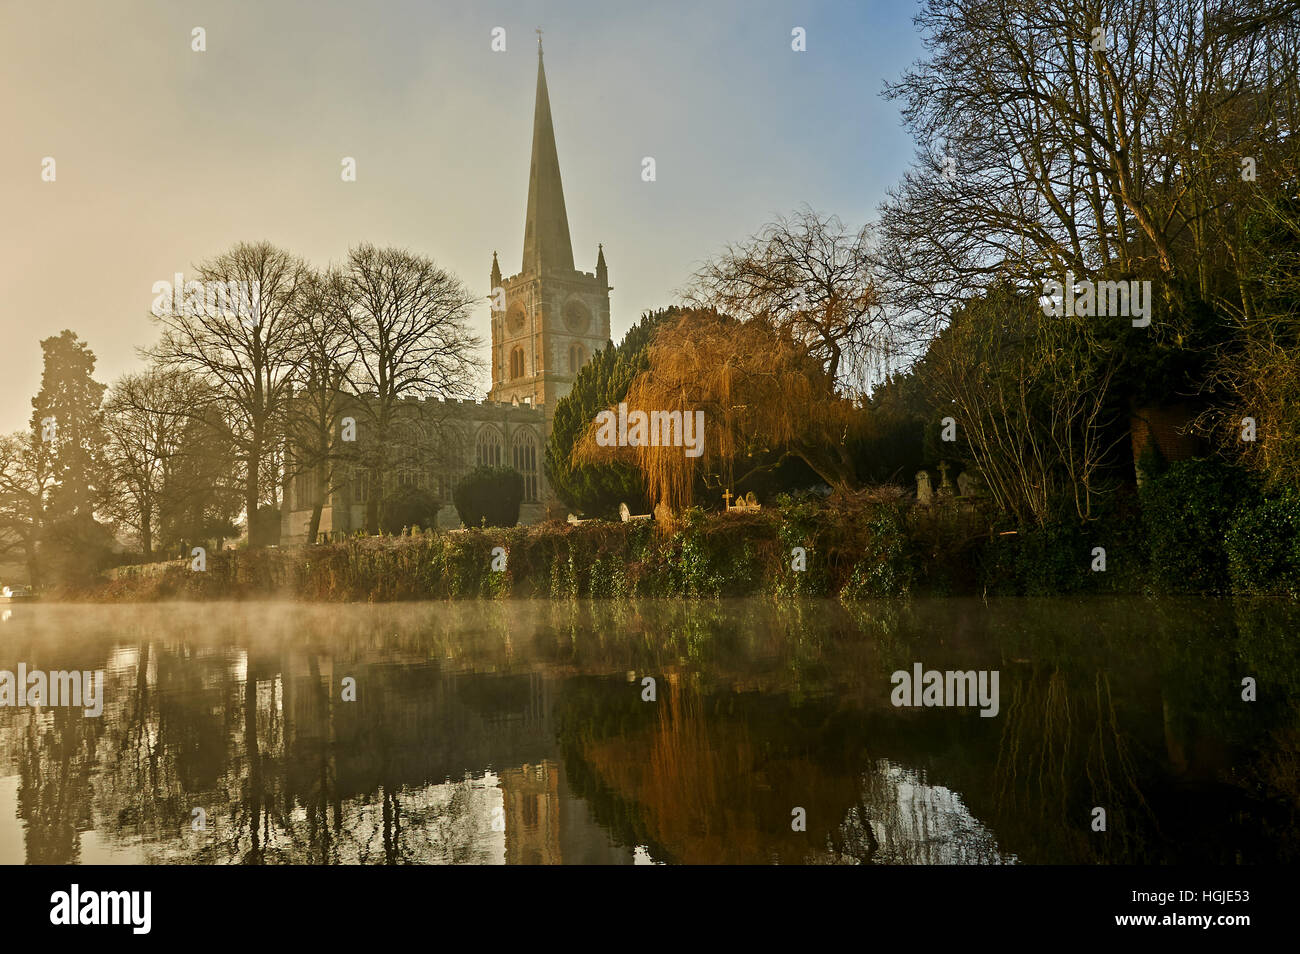 Holy Trinity church Stratford upon Avon stands overlooking the River Avon on a misty winter morning. - Stock Image